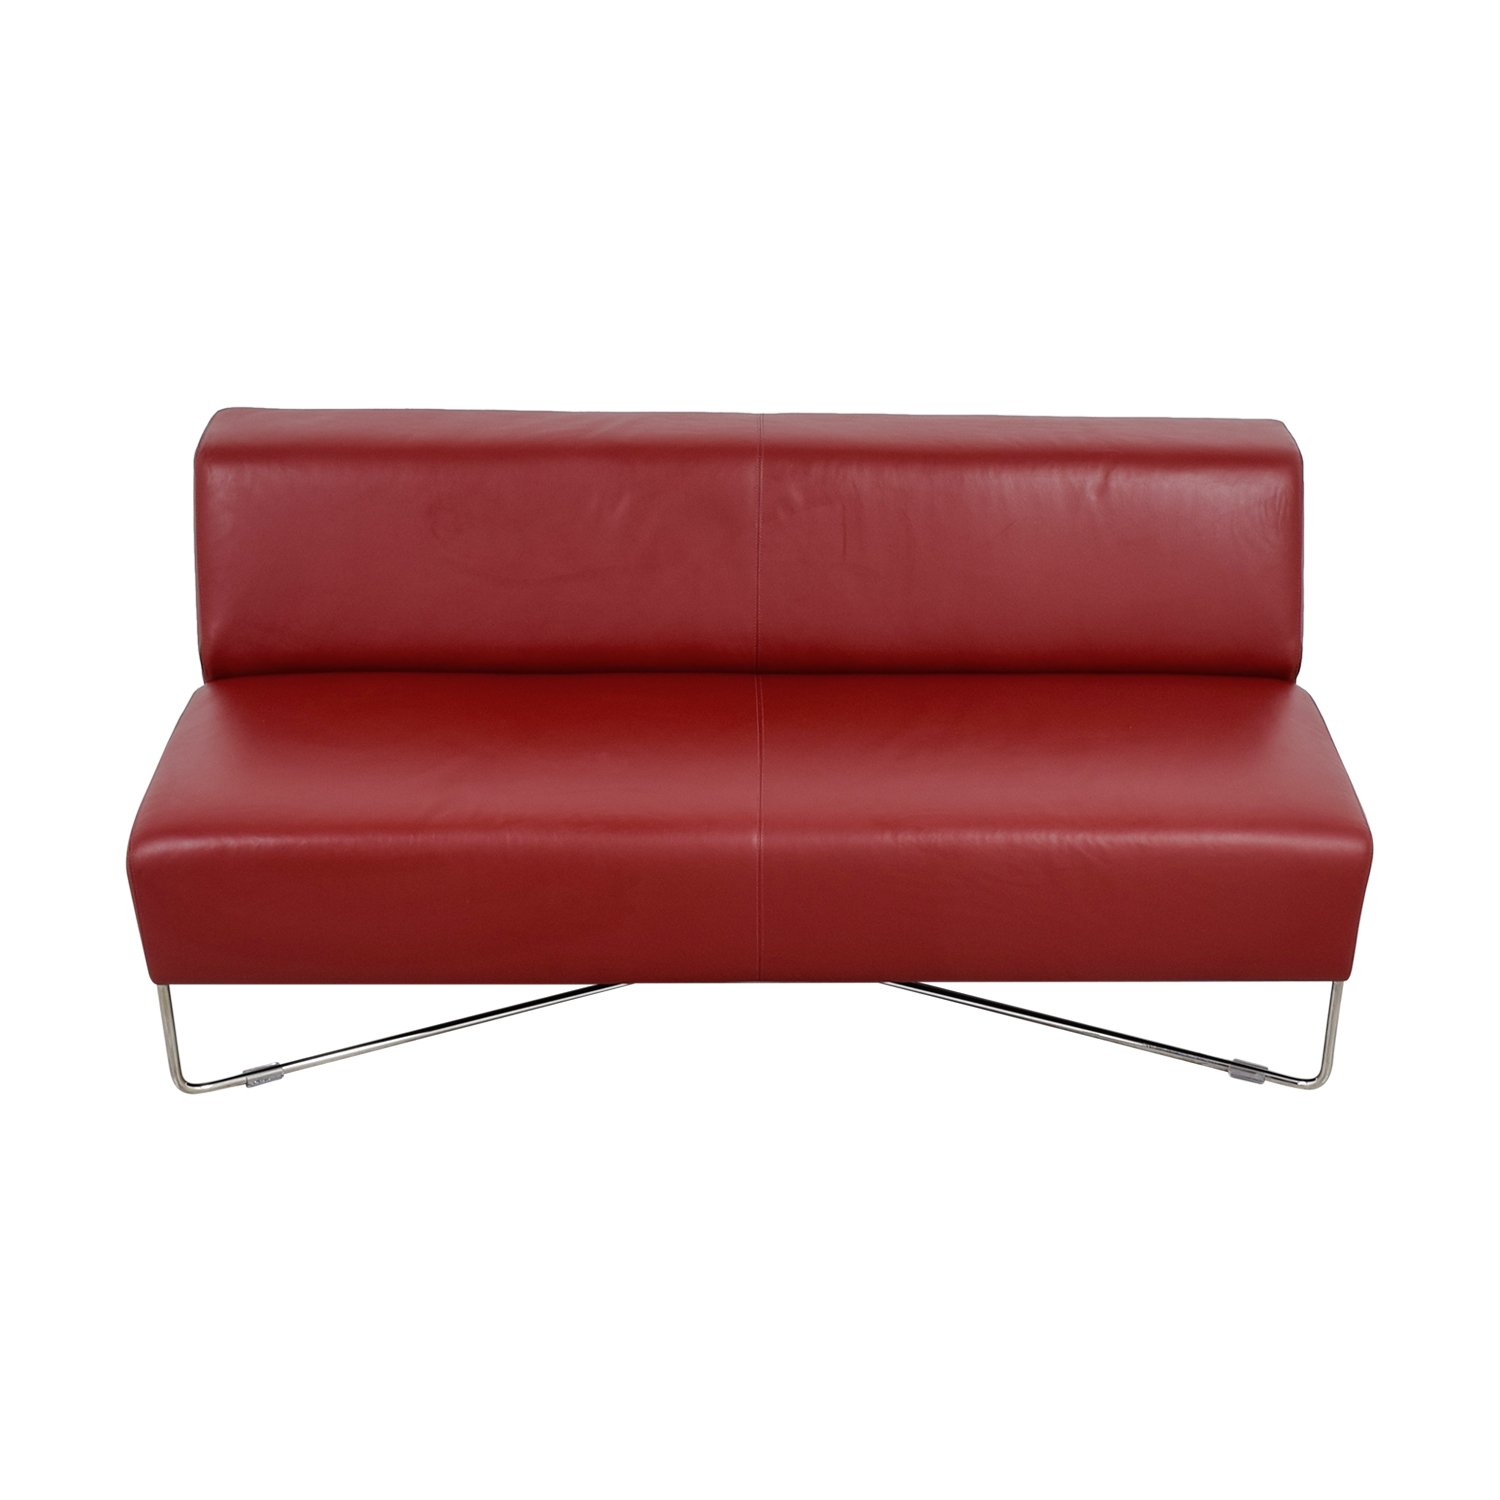 Bernhardt Bernhardt Balance Red Lounge Sofa on sale